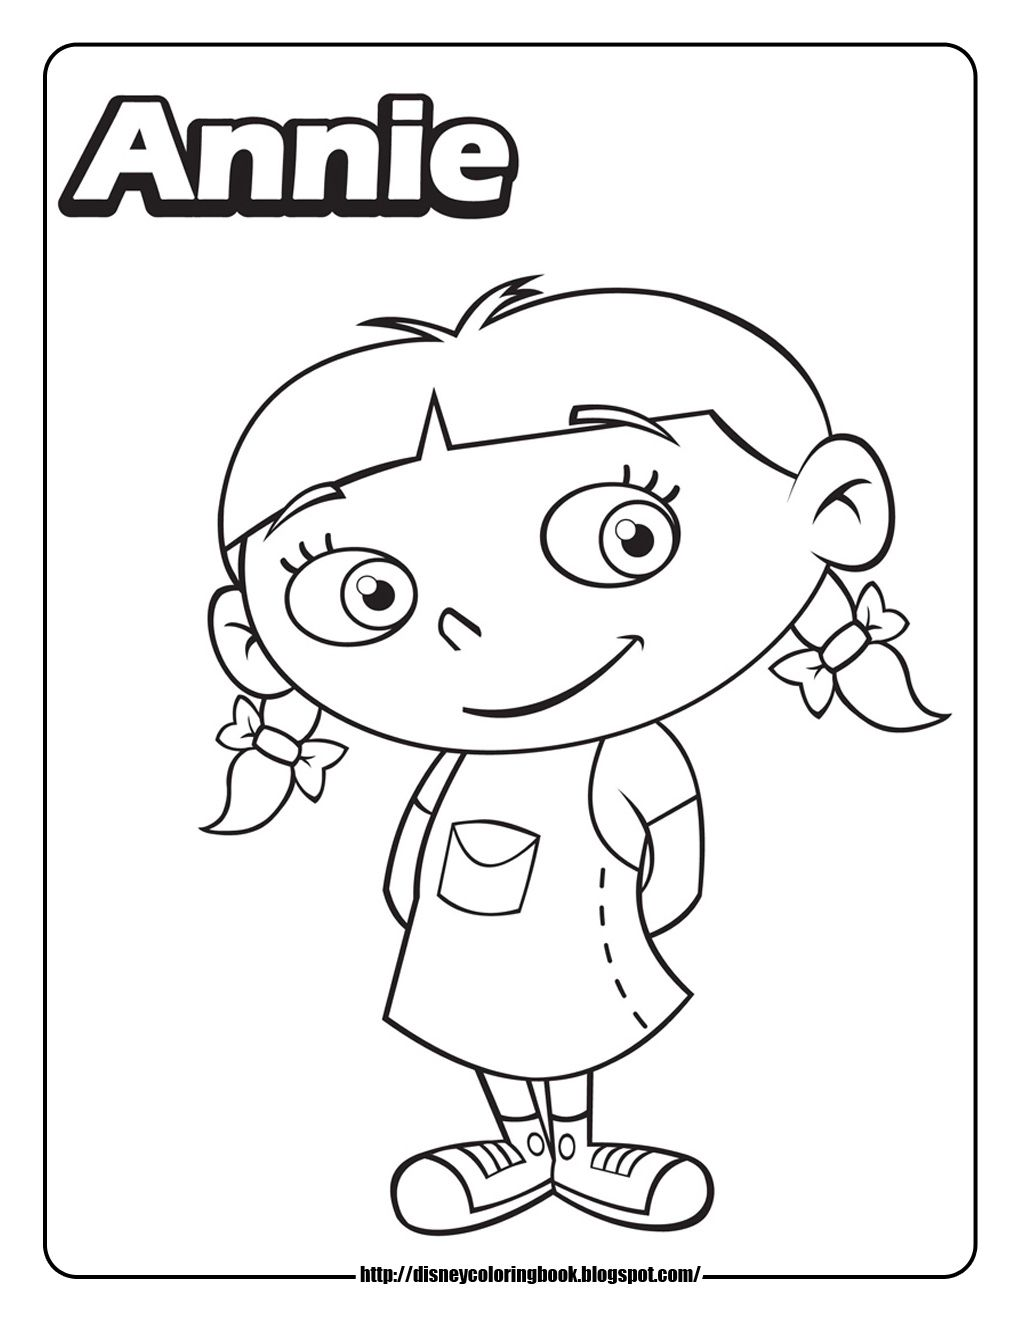 little einsteins coloring pages annie coloring pages Pinterest